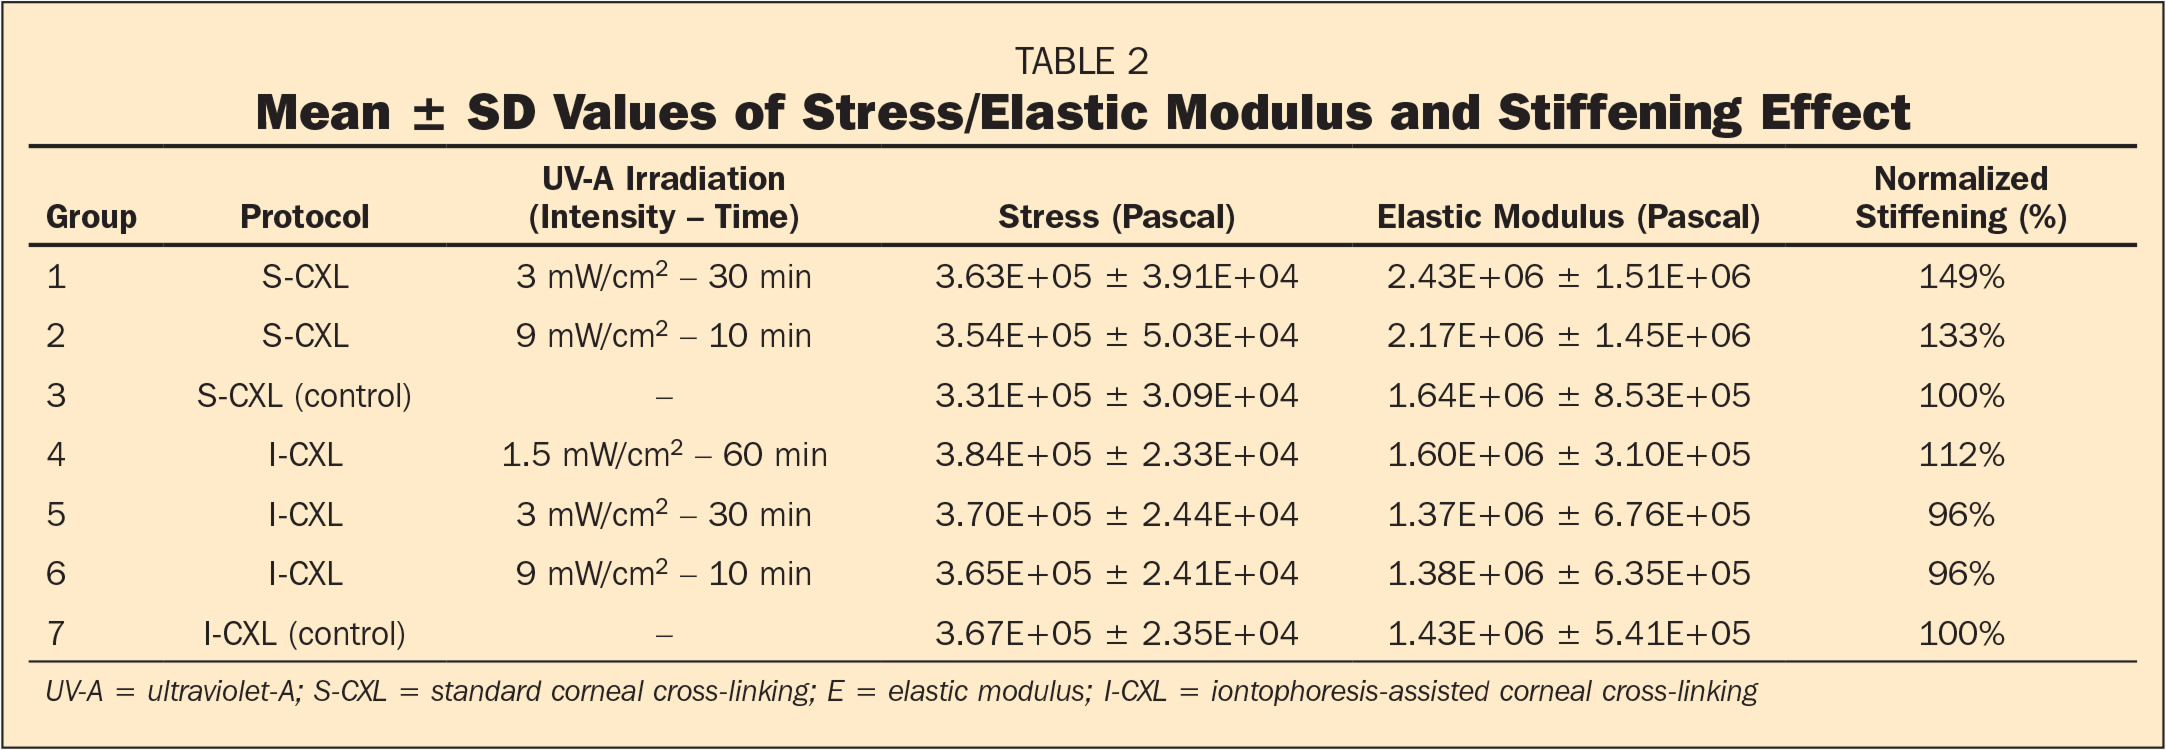 Mean ± SD Values of Stress/Elastic Modulus and Stiffening Effect